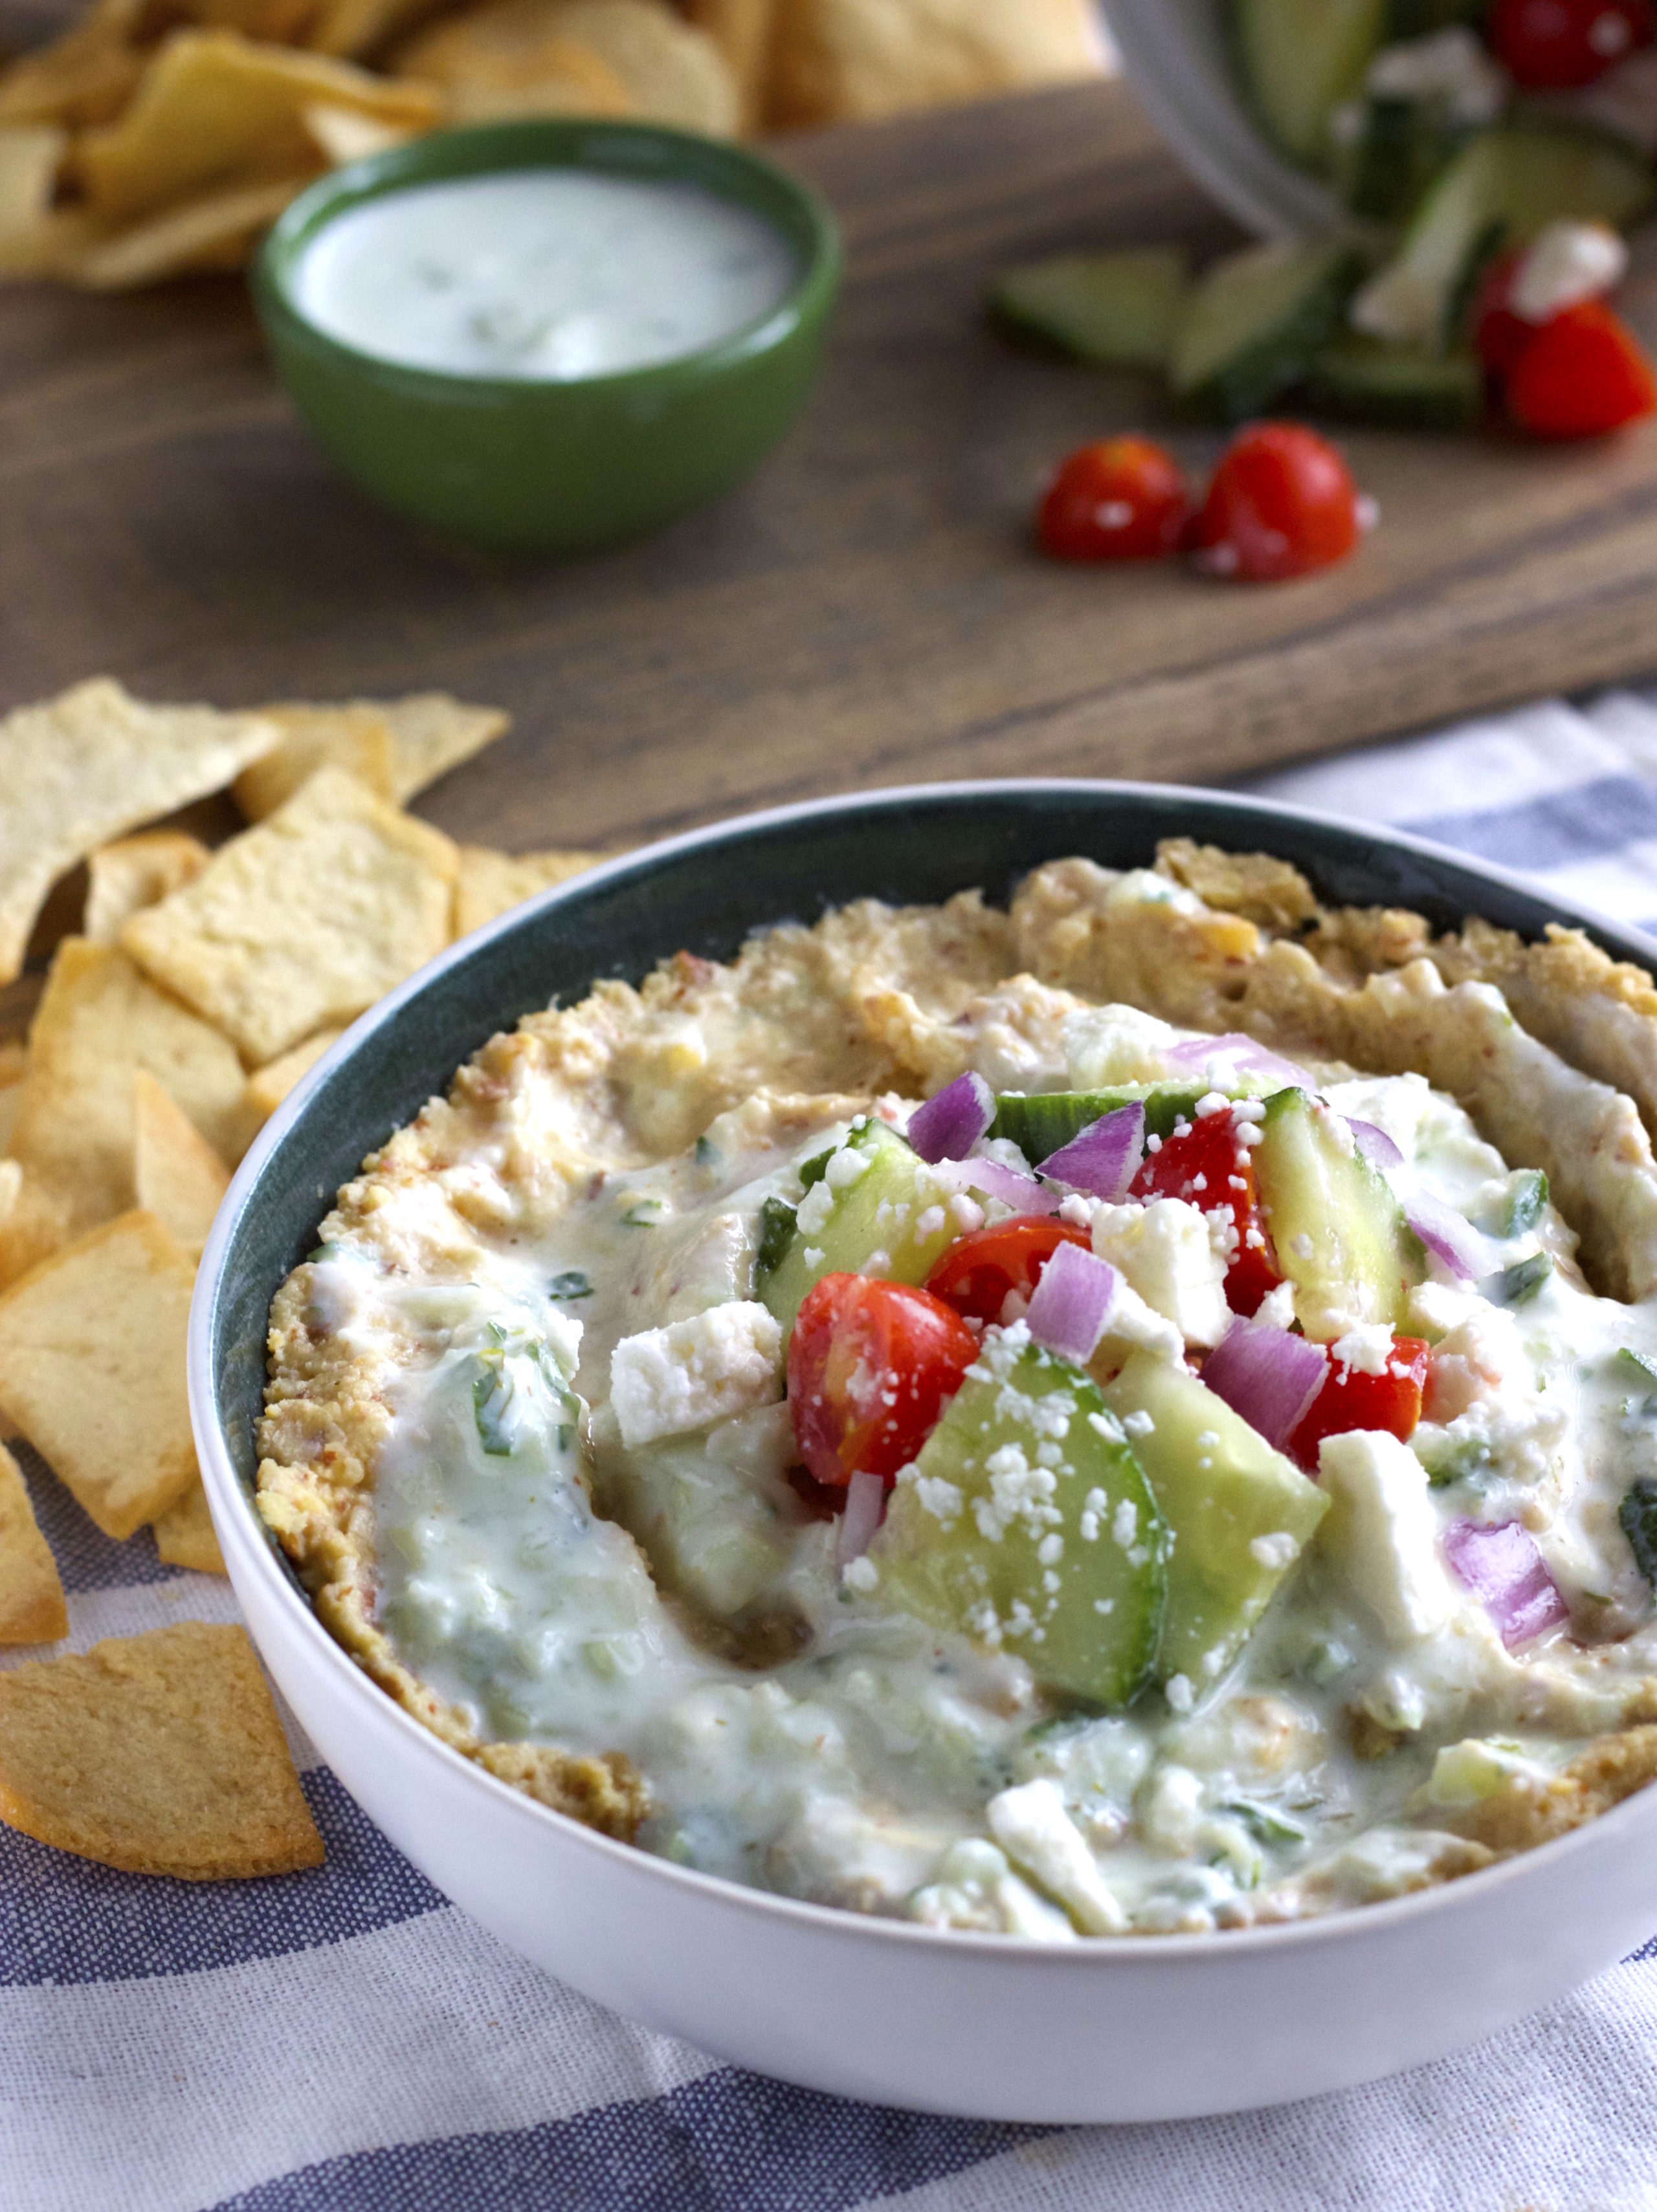 Creamy hummus made from almonds and topped with tzatziki sauce made from yogurt. A healthy party appetizer! | thealmondeater.com